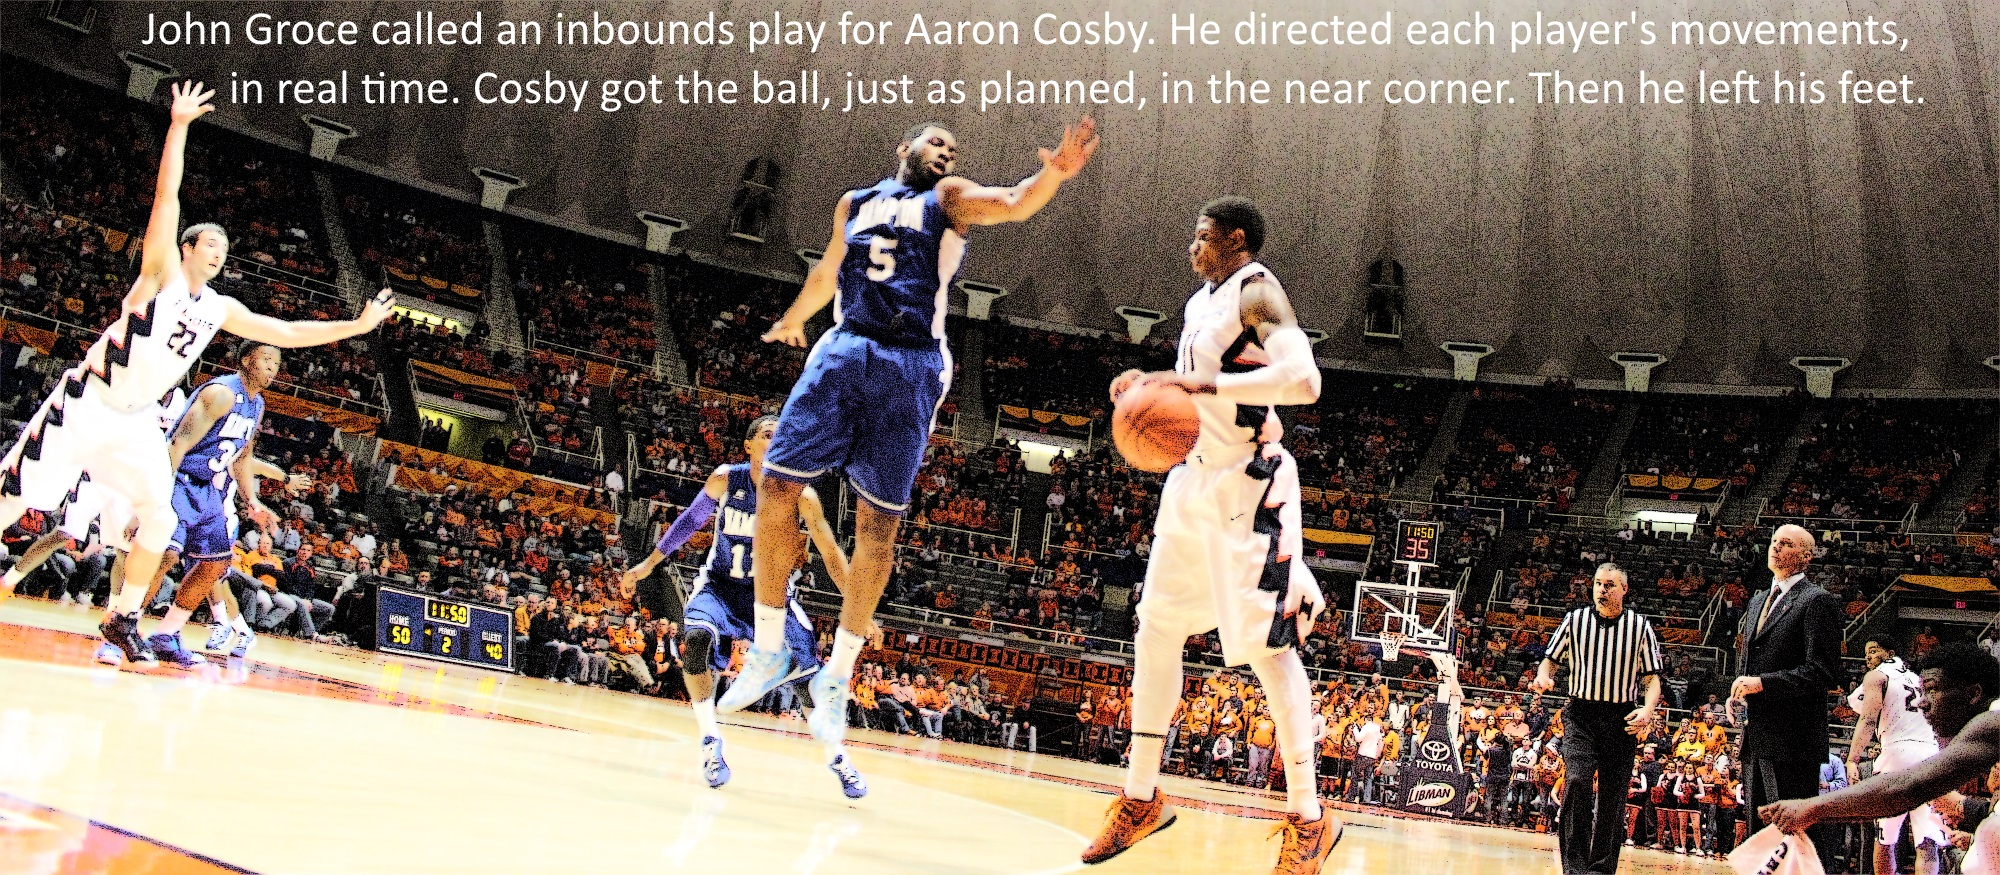 Aaron Cosby turnover